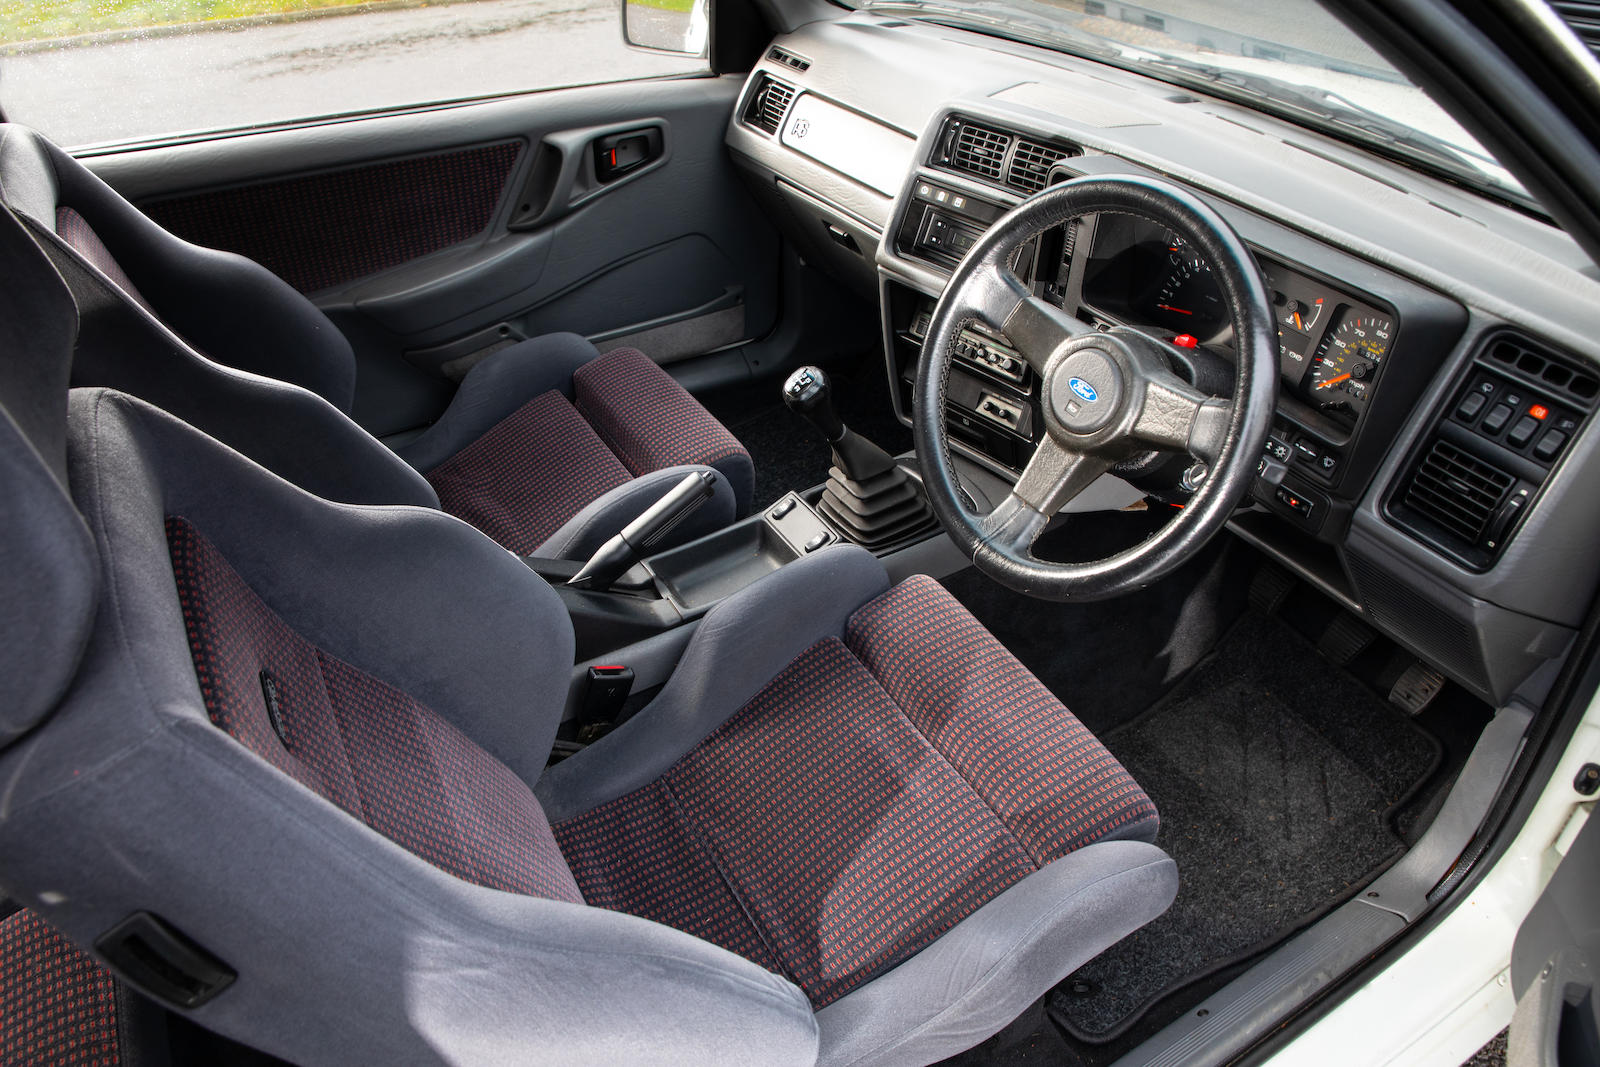 1987 Ford Sierra RS Cosworth Interior